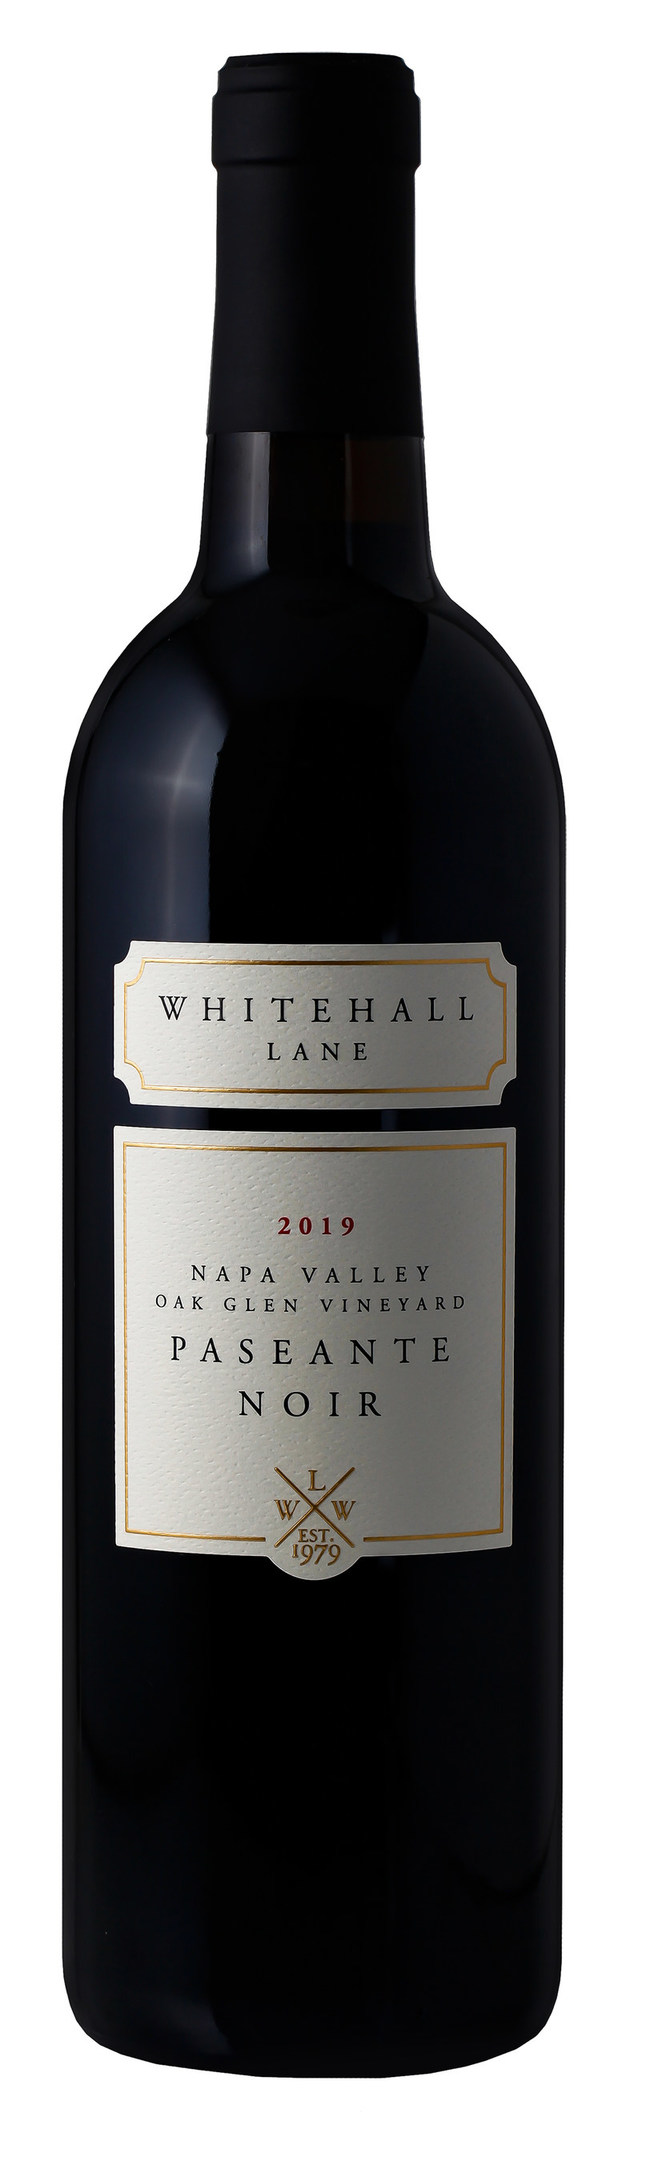 Whitehall Lane 2019 Paseante Noir, Napa Valley